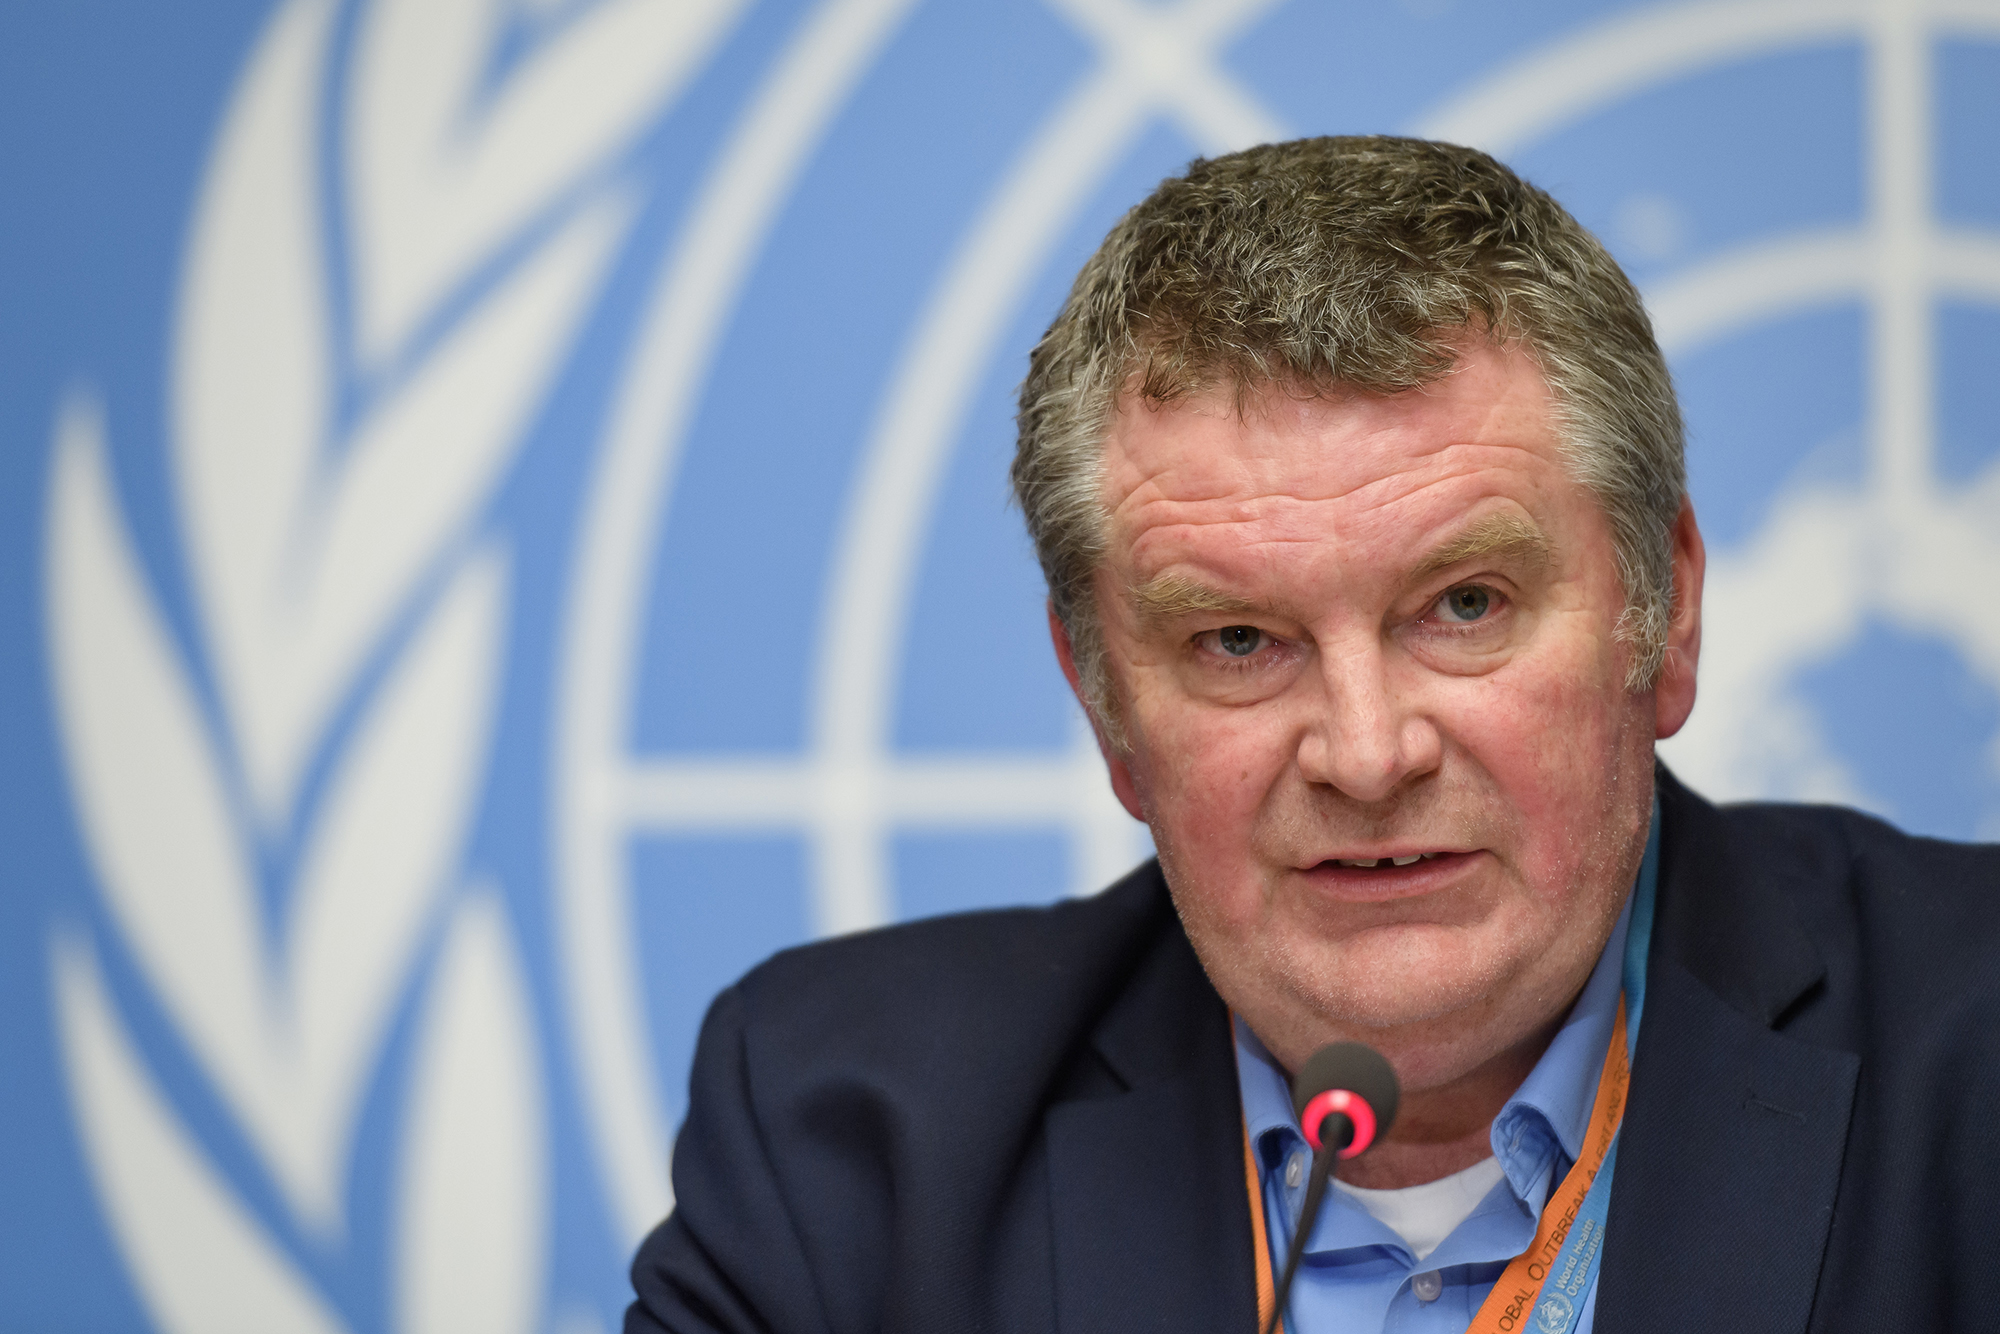 World Health Organization's Health Emergencies Programme executive director Dr. Michael Ryan on January 29 in Geneva, Switzerland.